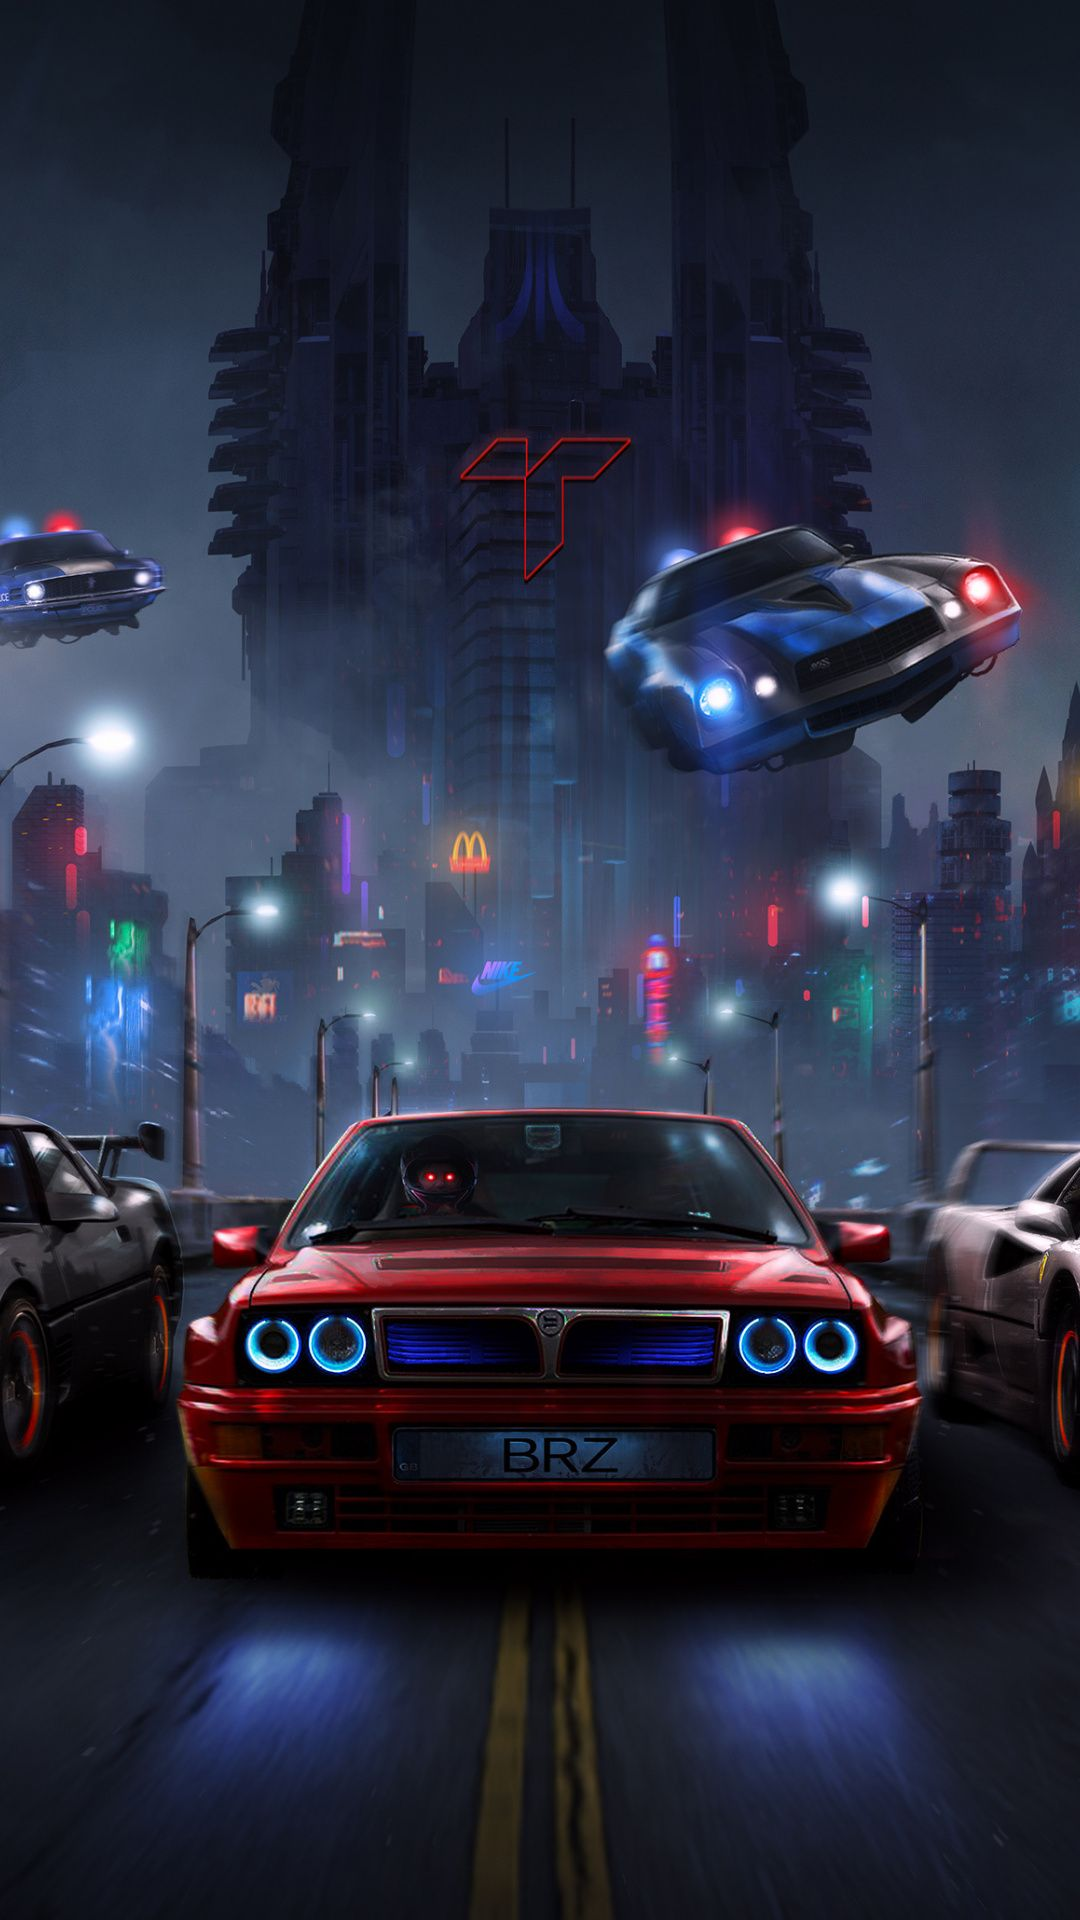 Racers Night Chase Cars 1080x1920 Wallpaper Futuristic Cars Car Wallpapers Street Racing Cars